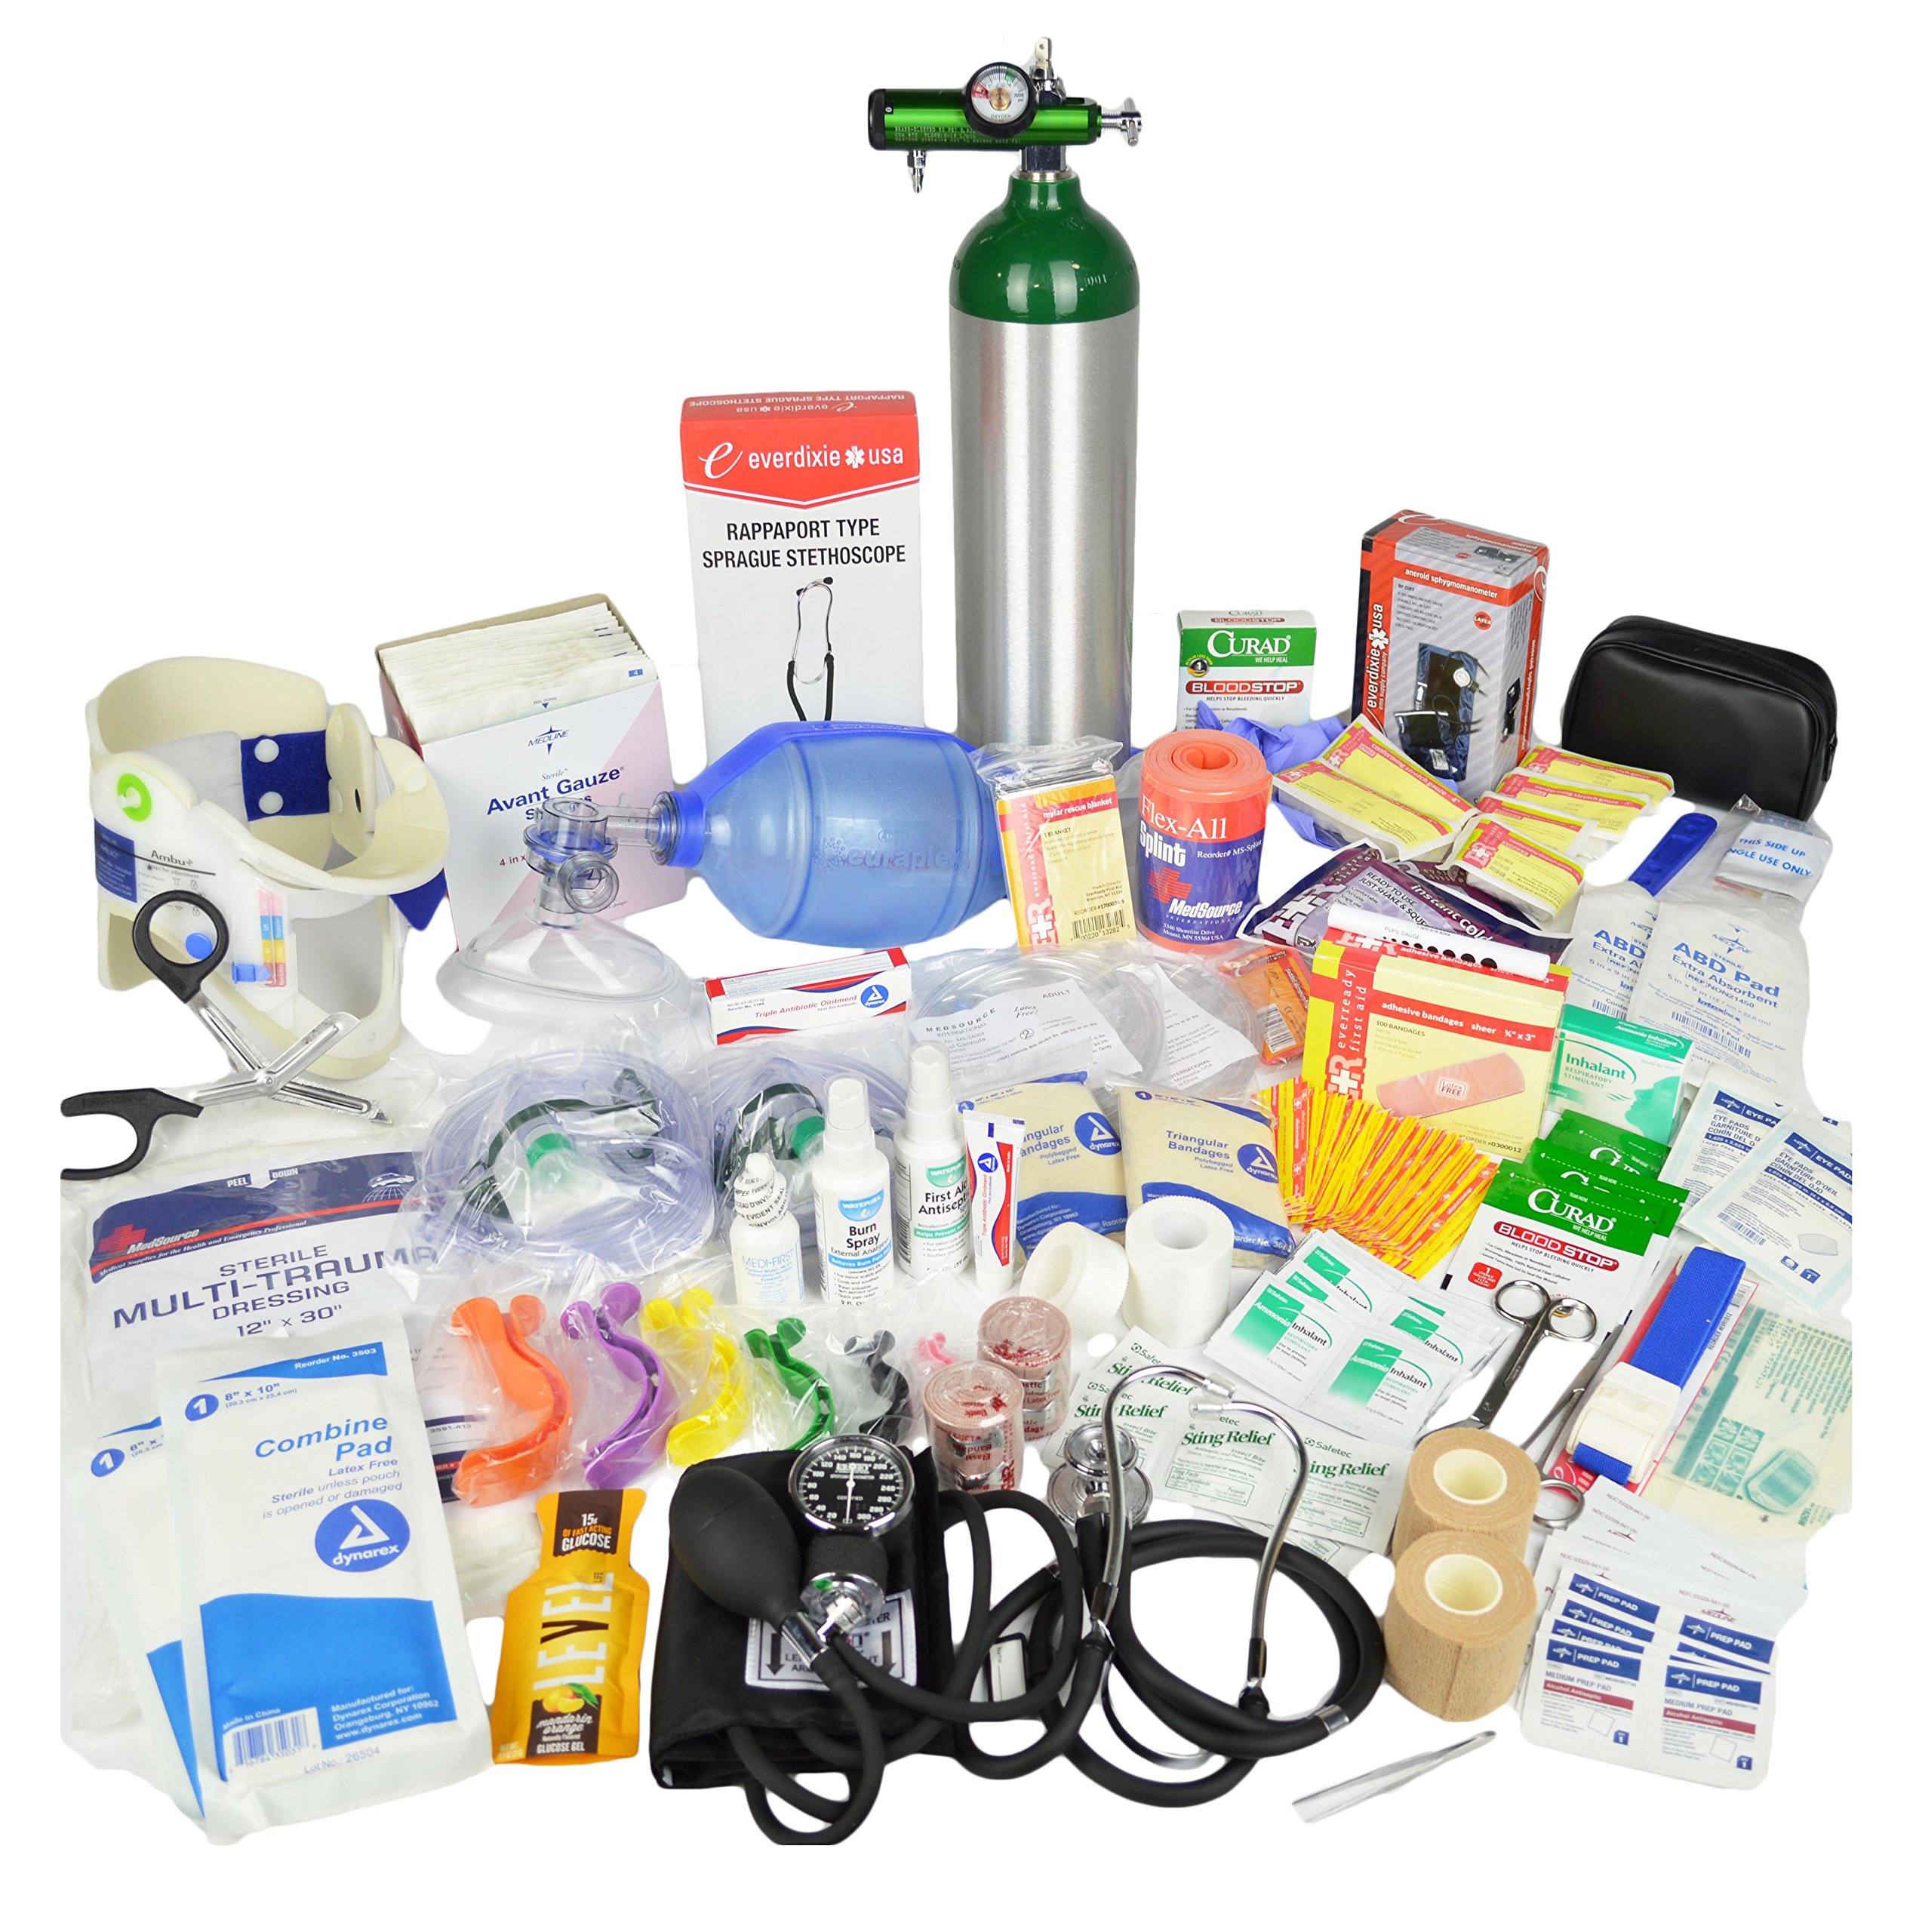 Lightning X Stocked Medic First Aid Trauma Fill Kit w/ Emergency Medical Supplies D by Lightning X Products